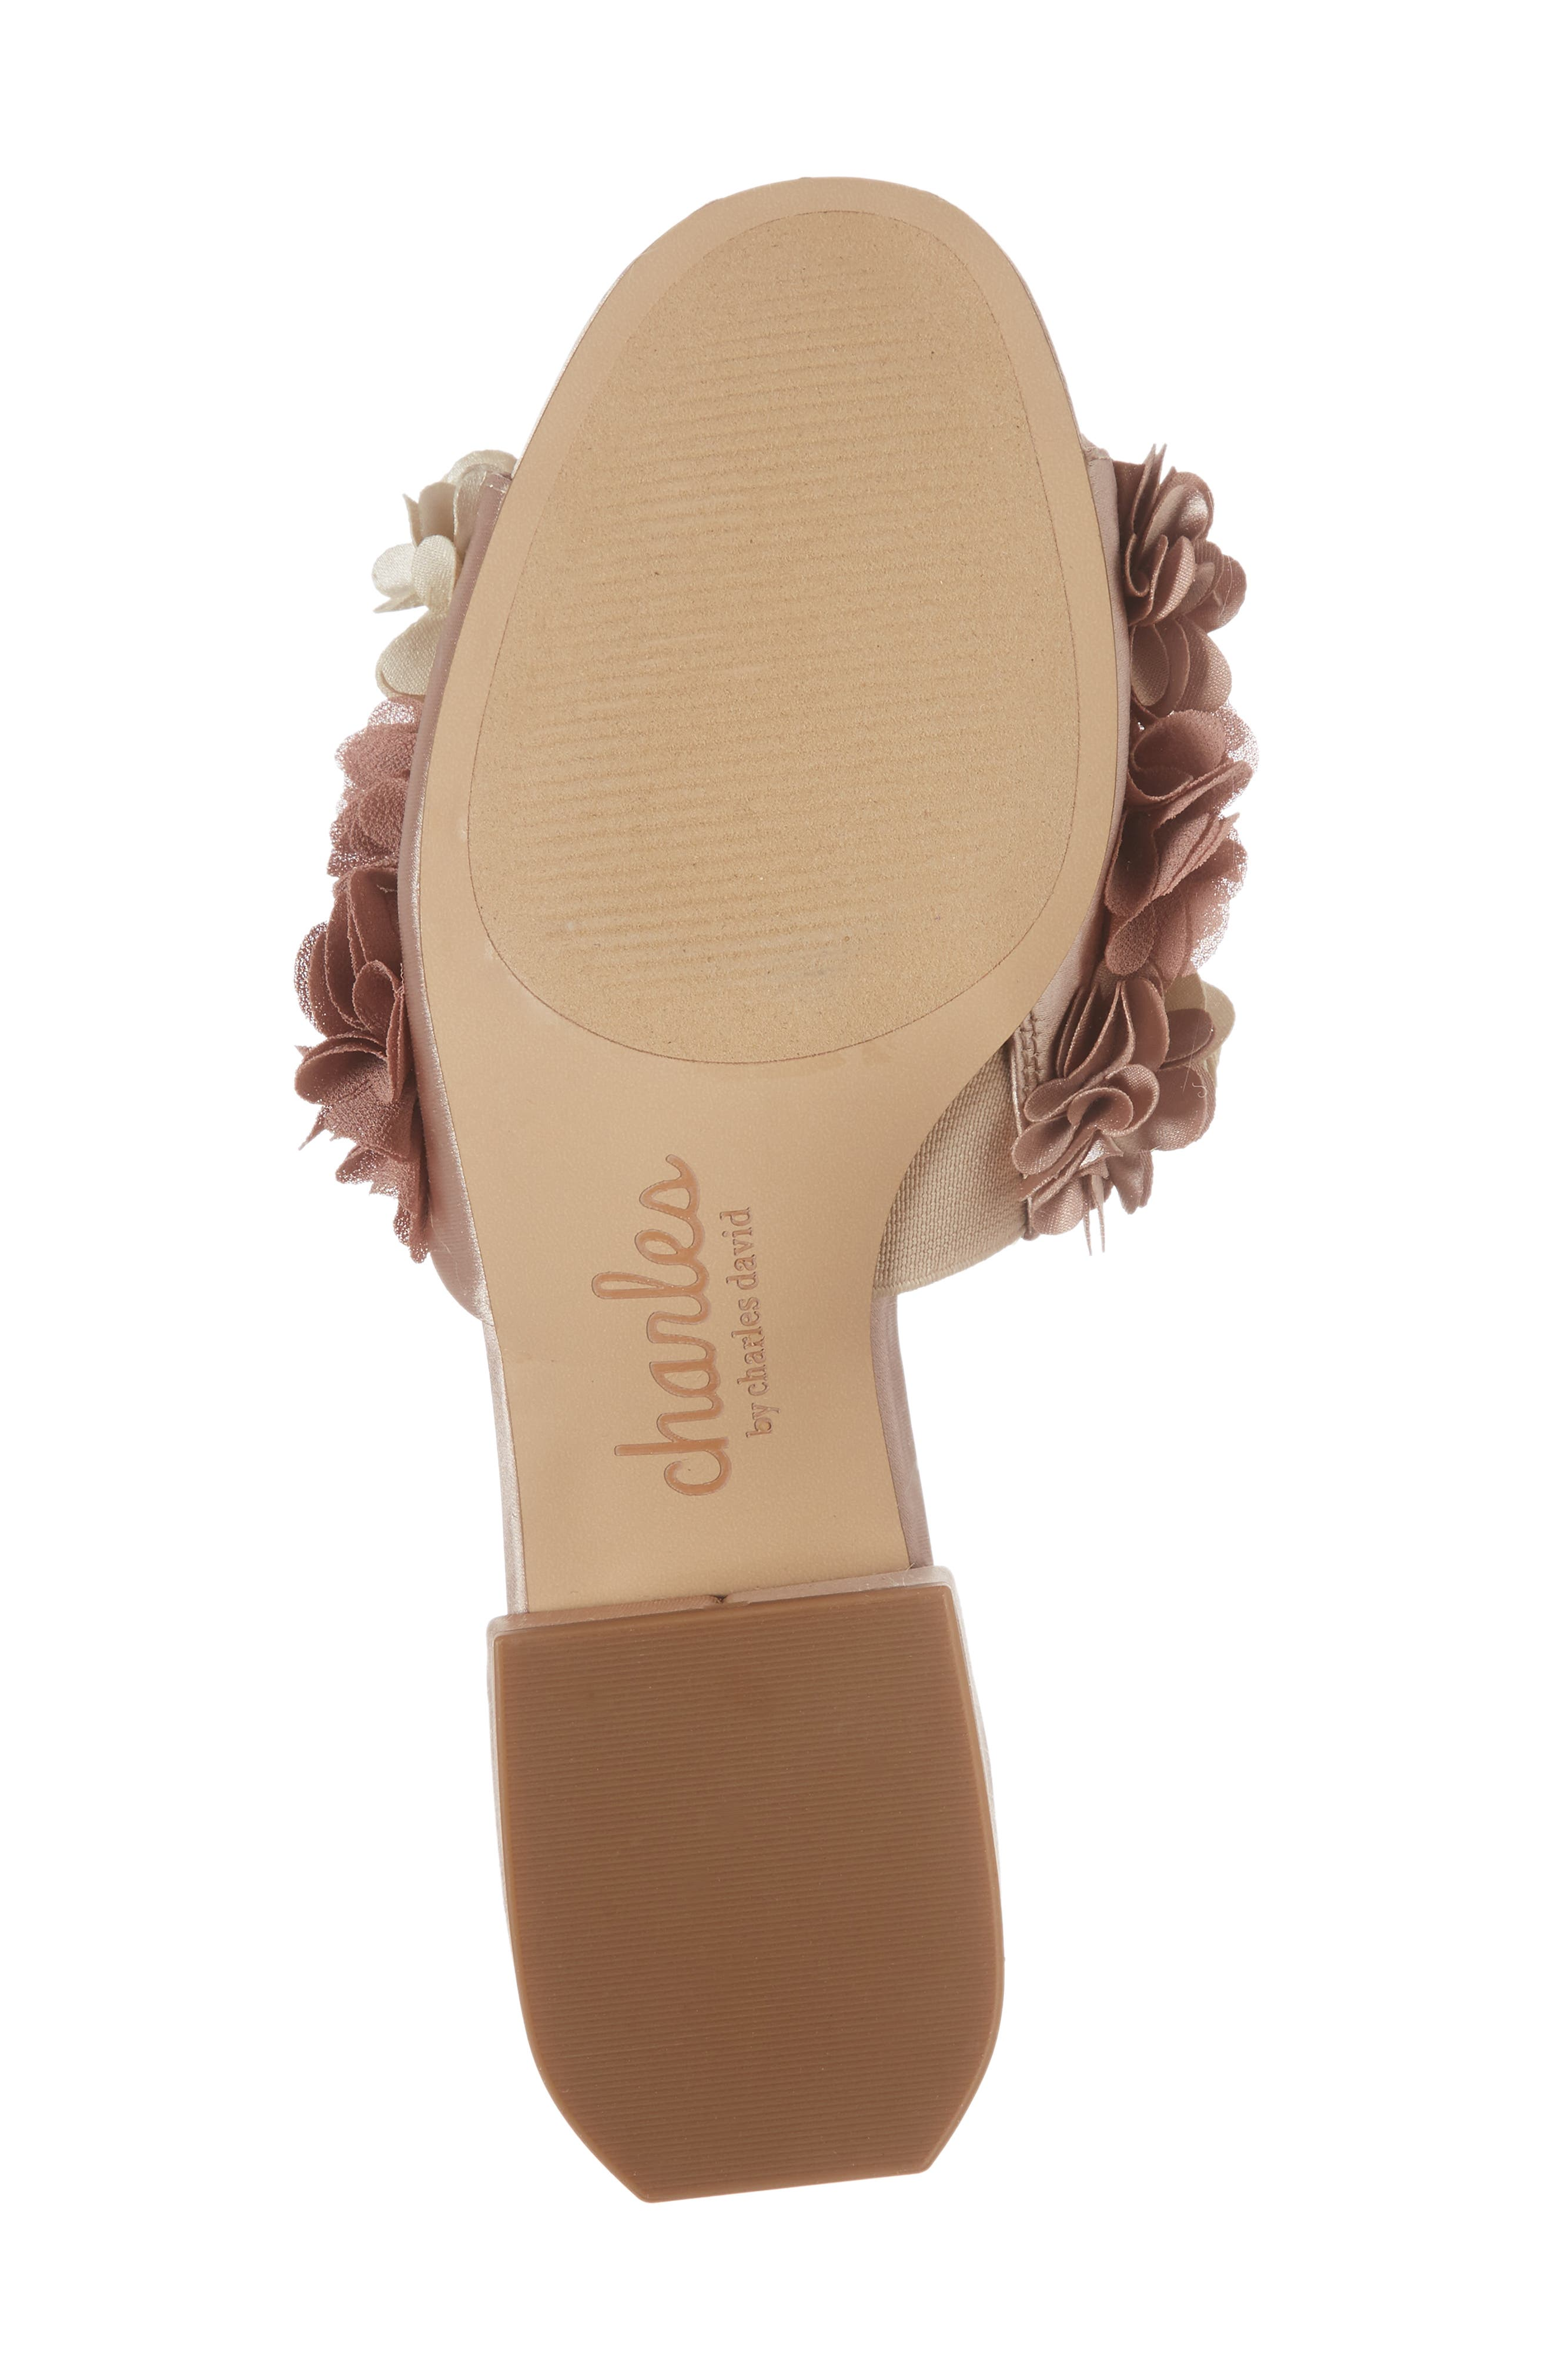 Victorious Sandal,                             Alternate thumbnail 6, color,                             IVORY FABRIC